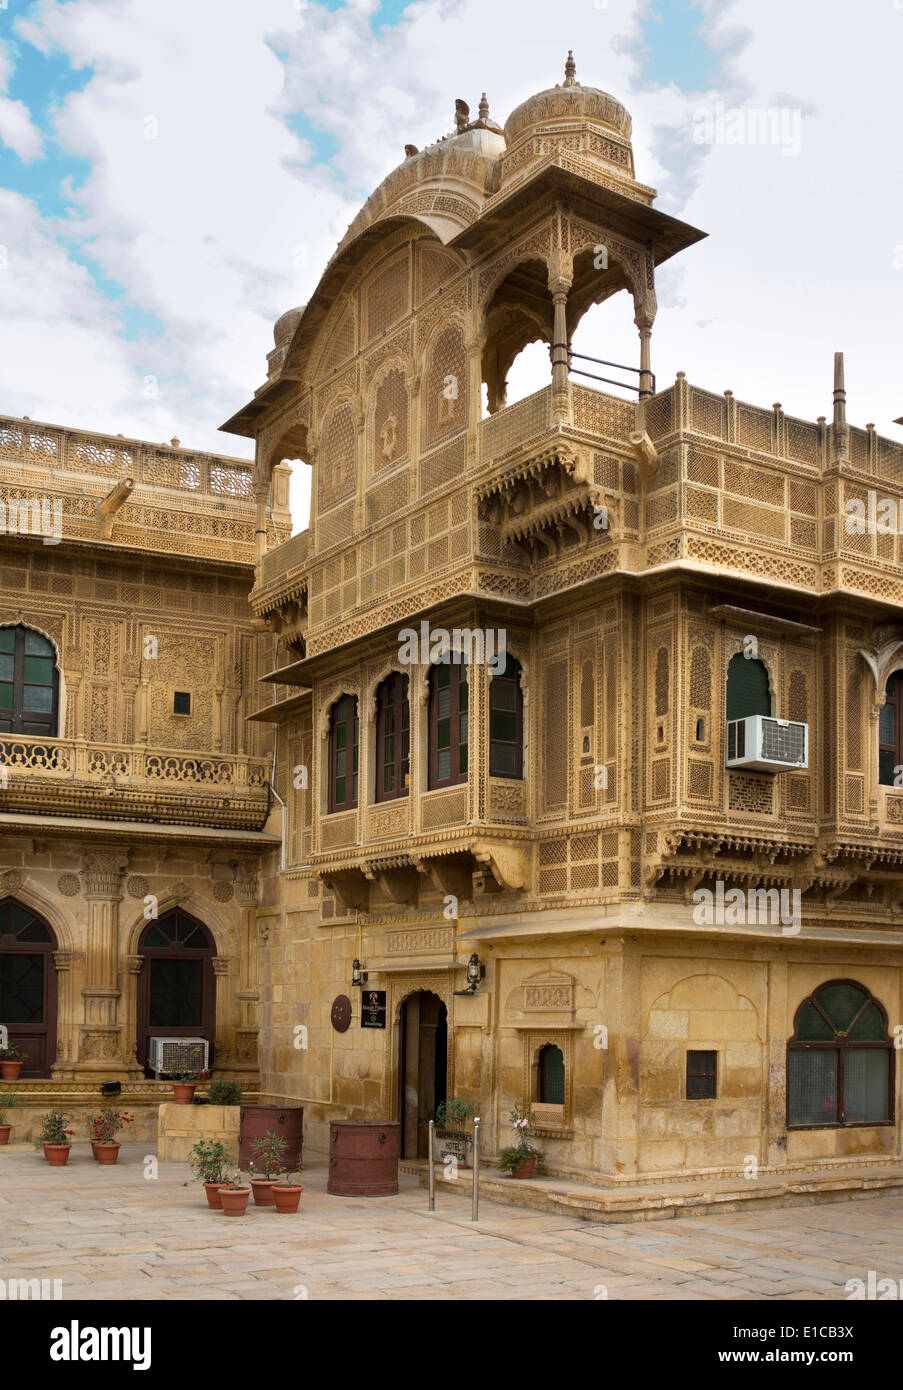 India, Rajasthan, Jaisalmer, Gandhi Chowk, Mandir Palace Hotel, home of former rulers welcomheritage group hotels - Stock Image